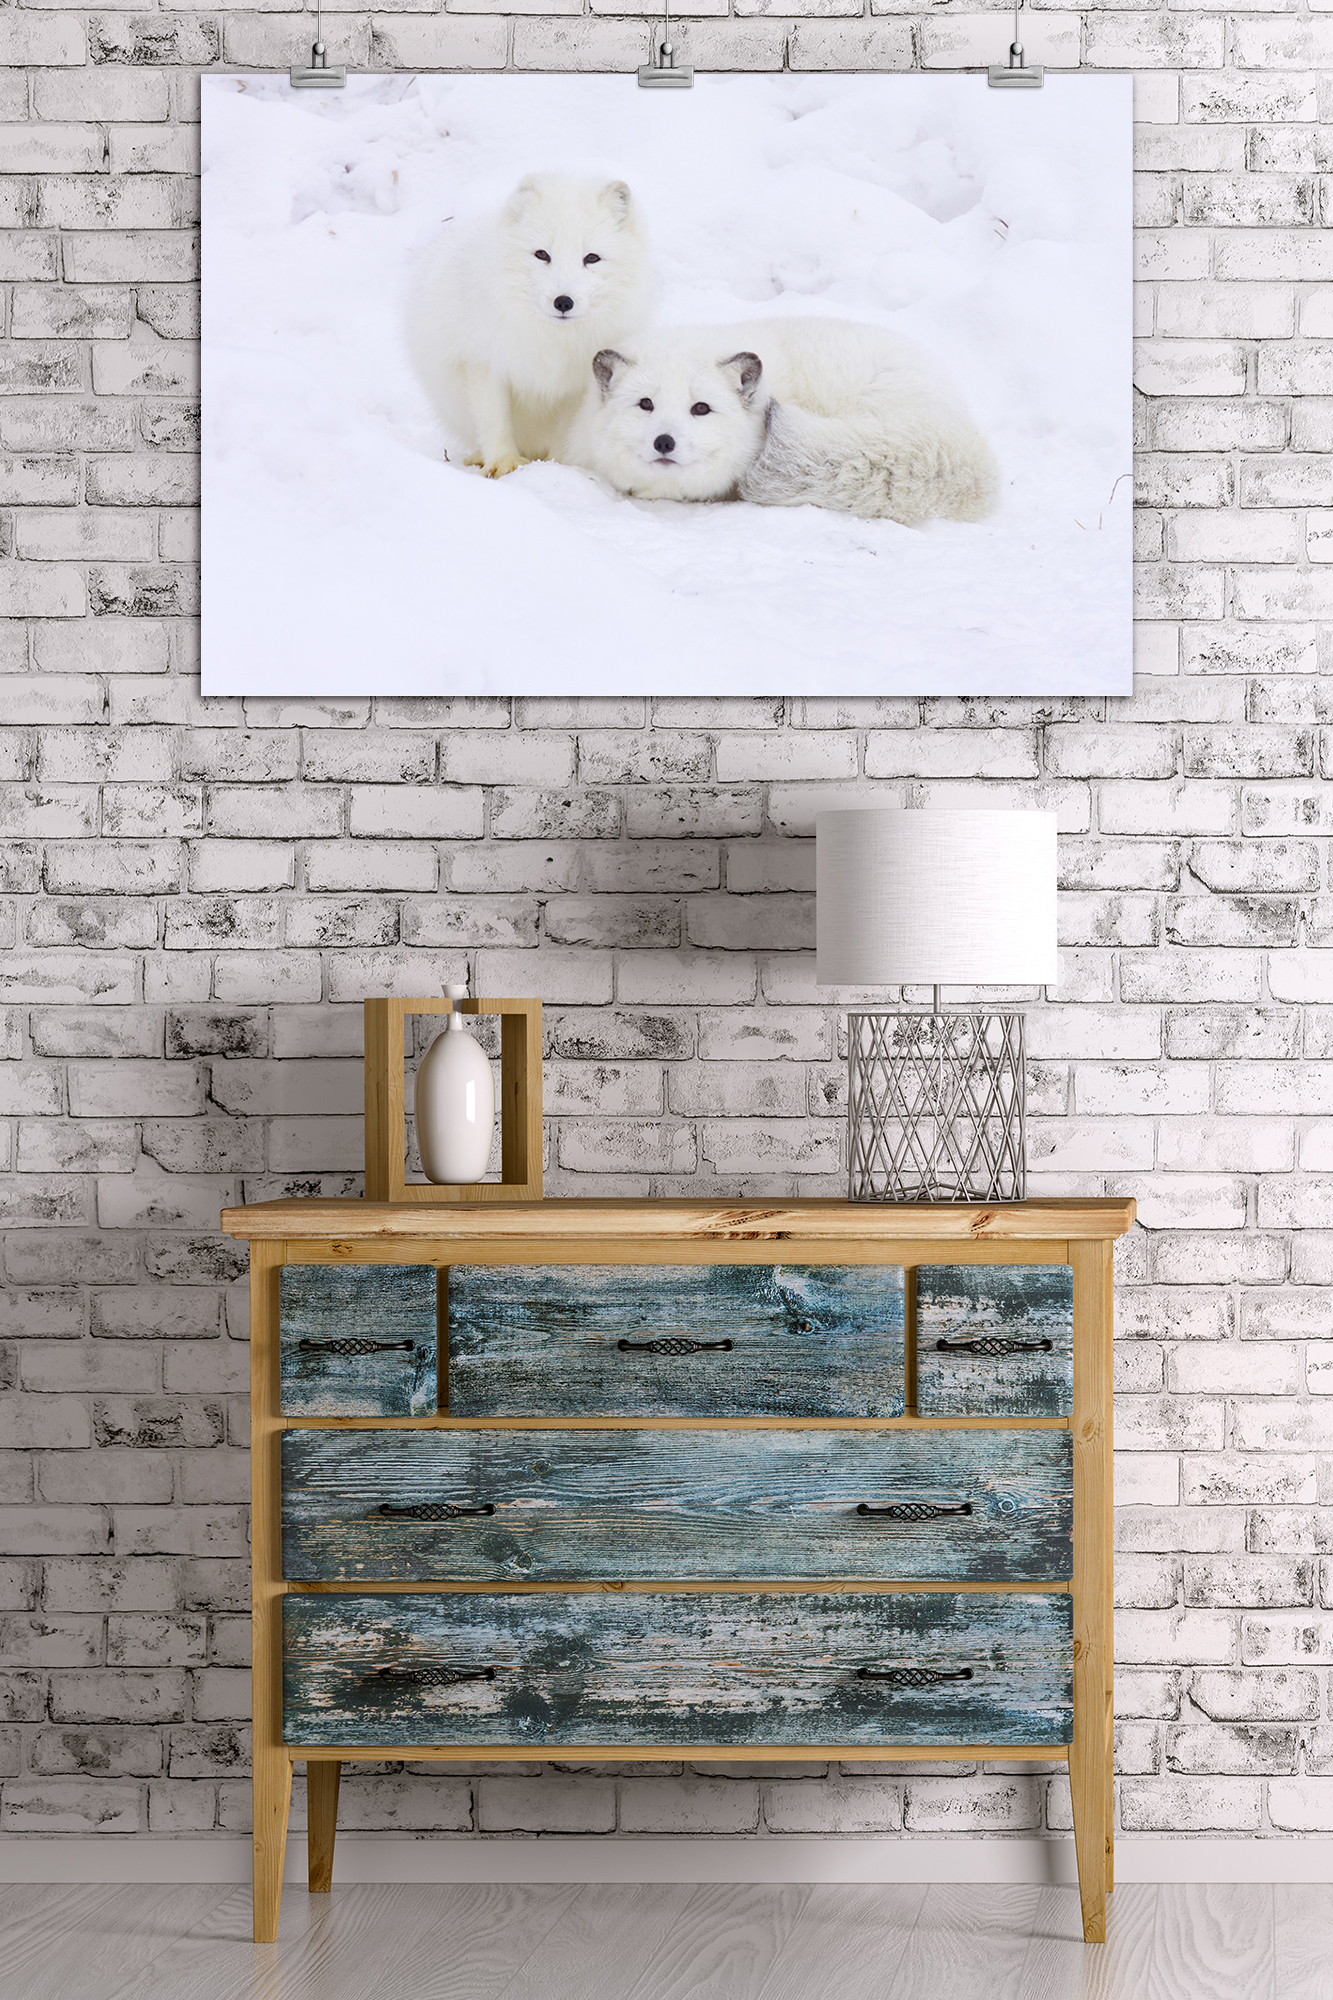 Arctic Fox Posters, Wood /& Metal Signs LP Photography